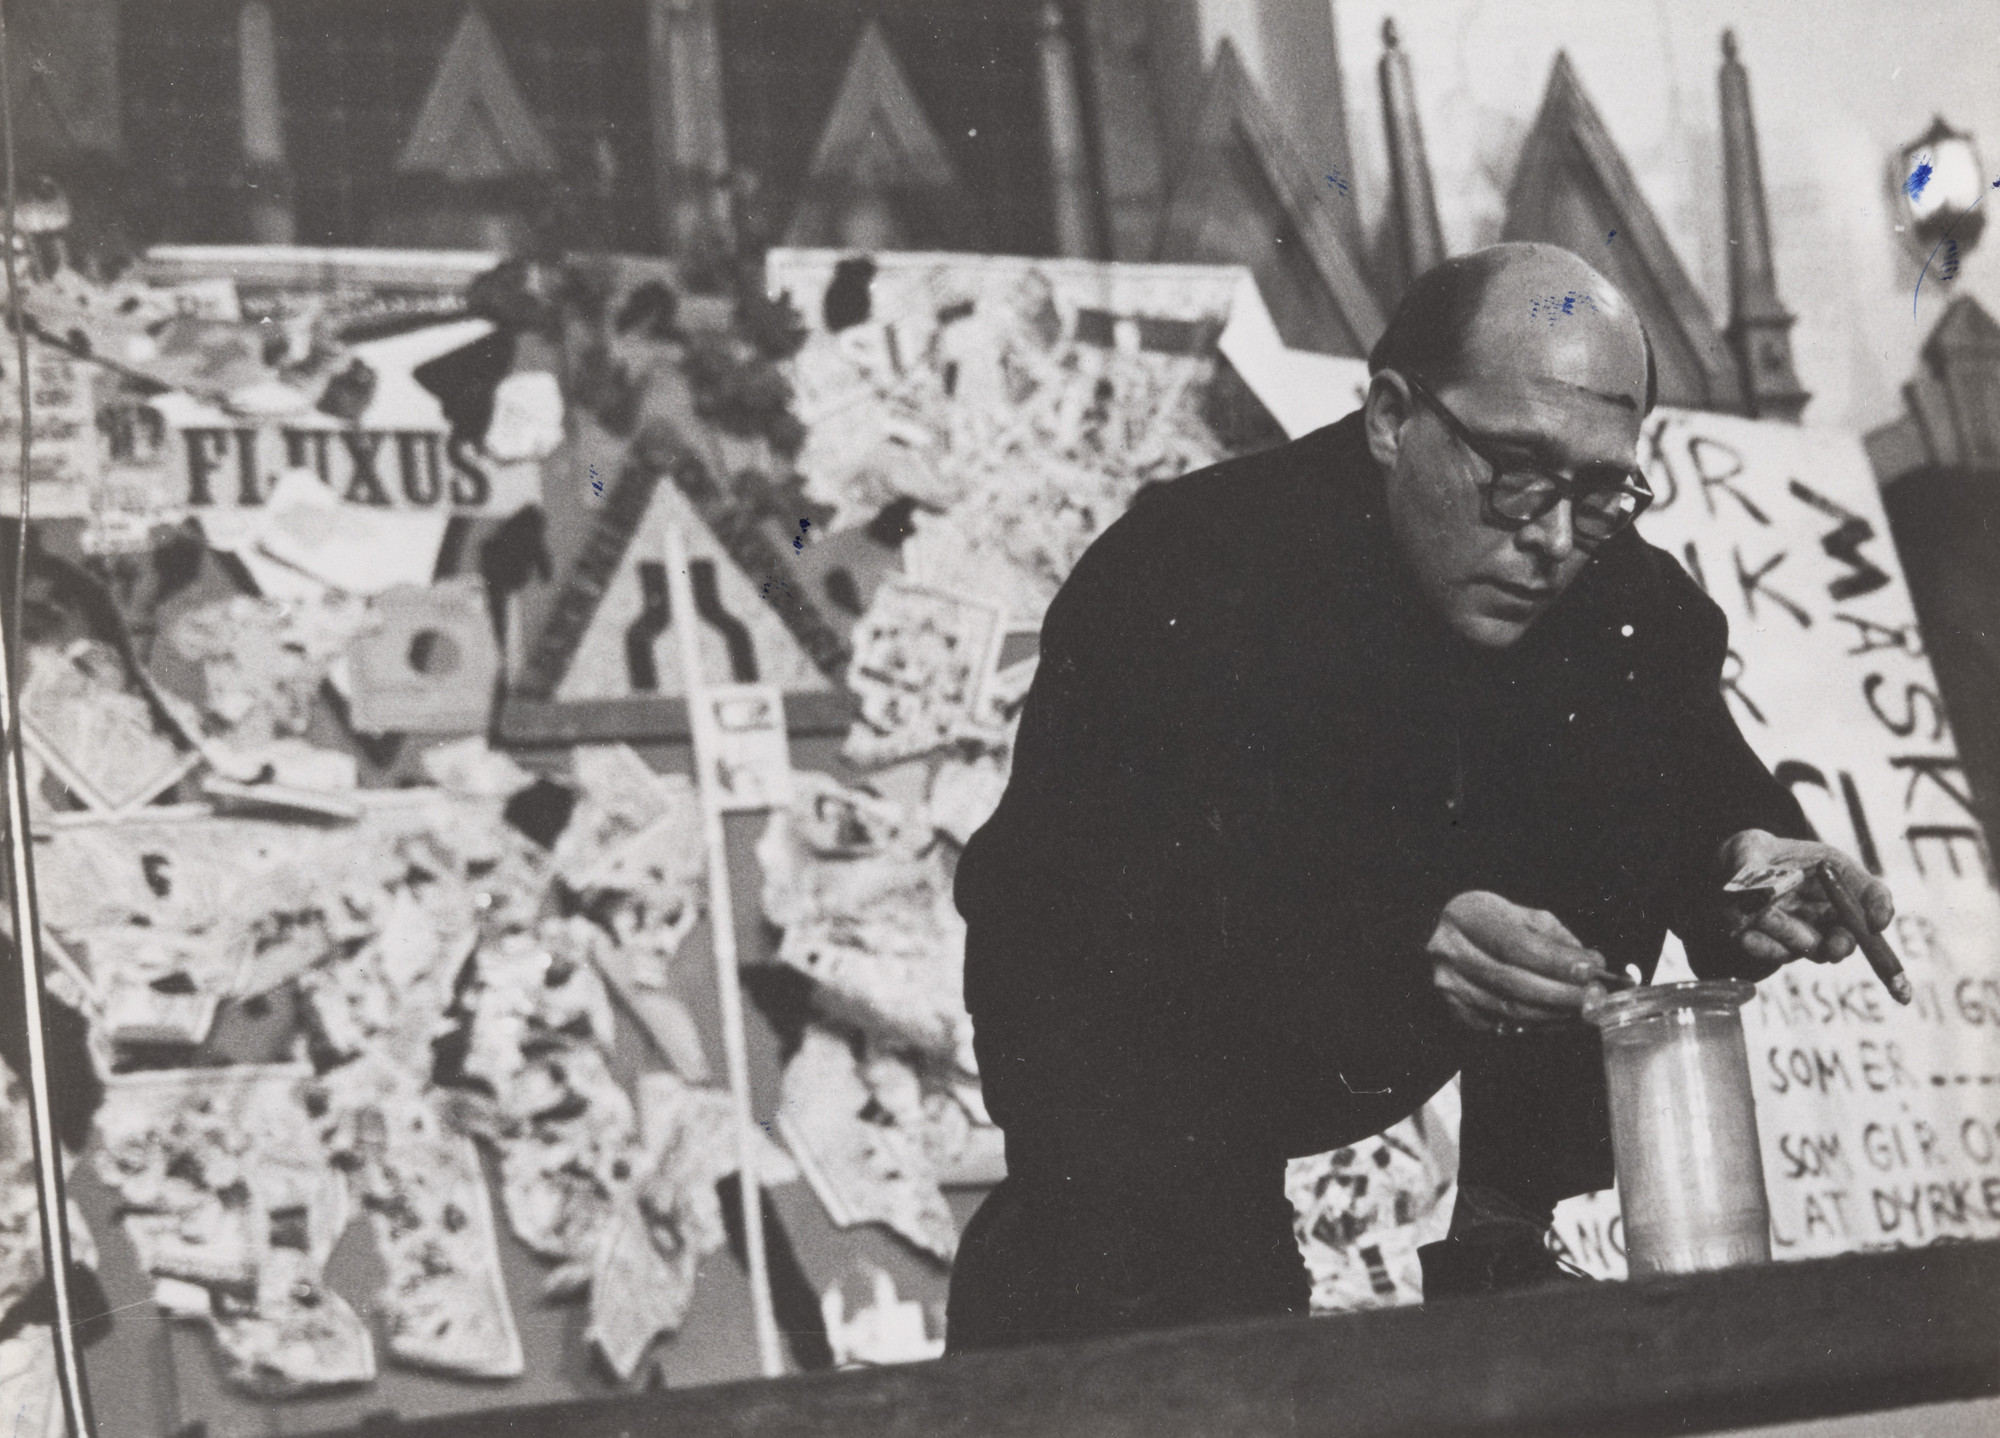 Emmett Williams. Alphabet Symphony, performed during Fluxus/Musik og Anti-Musik/det Instrumentale Teater, Nikolai Kirke, Copenhagen, November 23, 1962. 1962